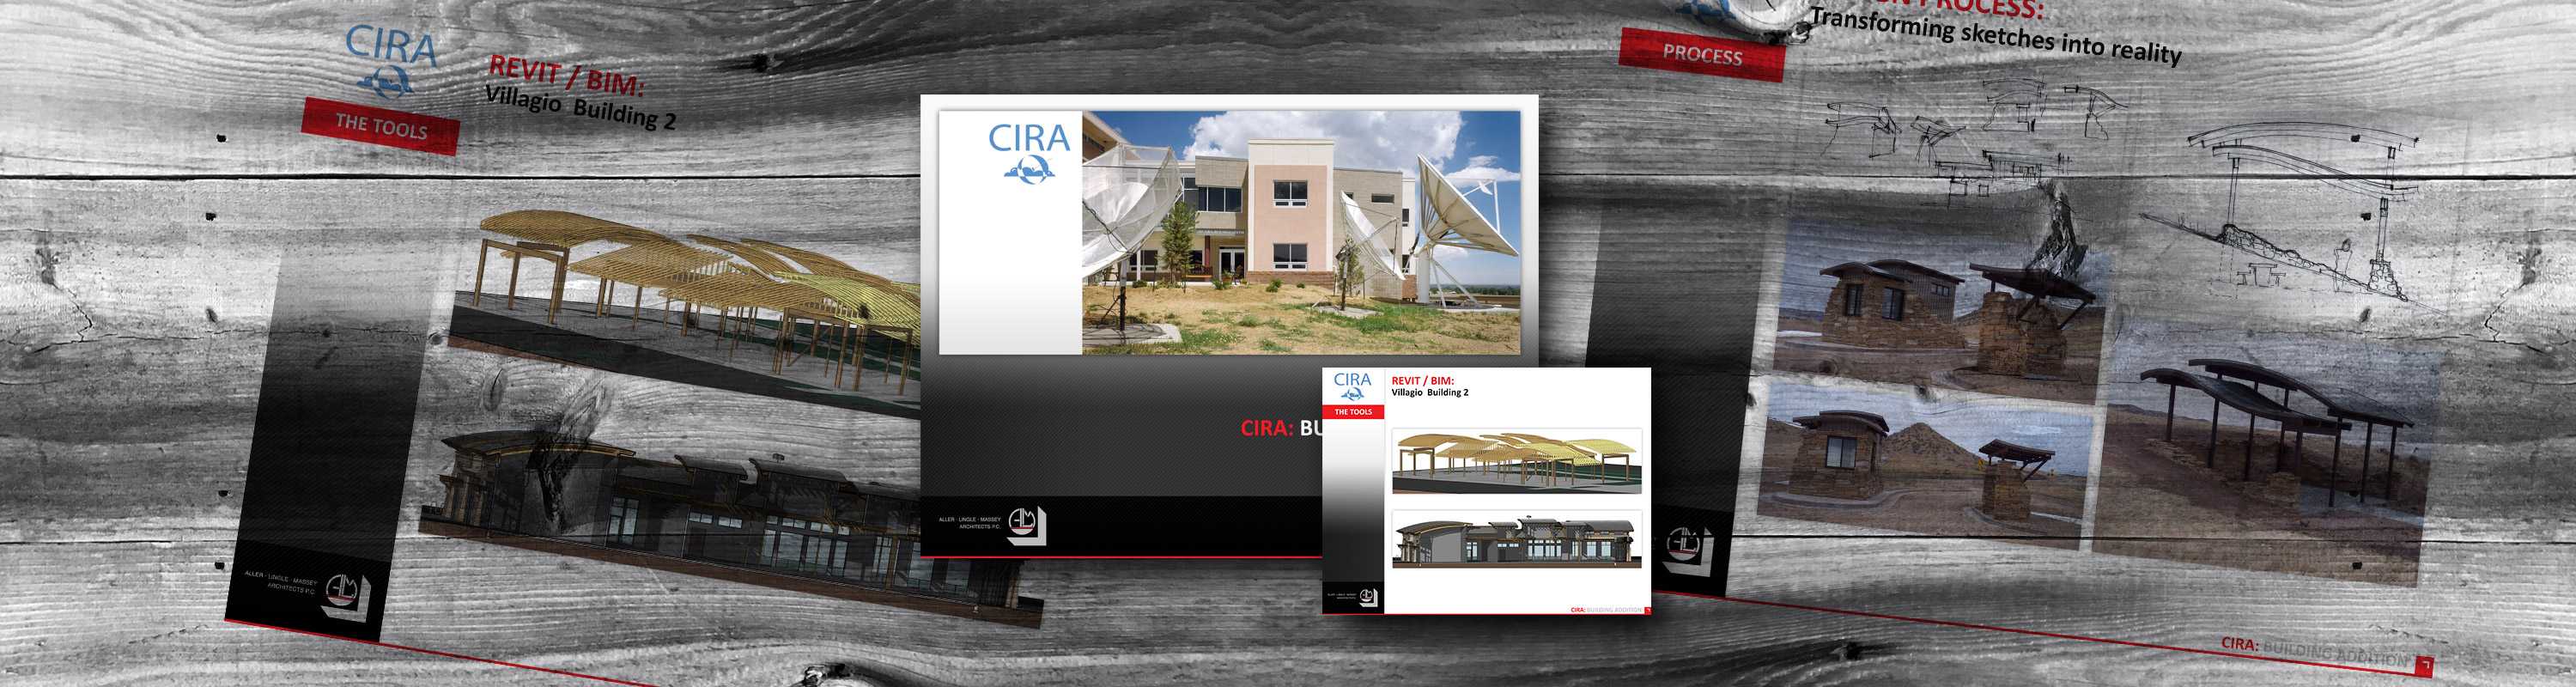 Marketing campaign fort collins alm2s architects for Marketing for architects and designers